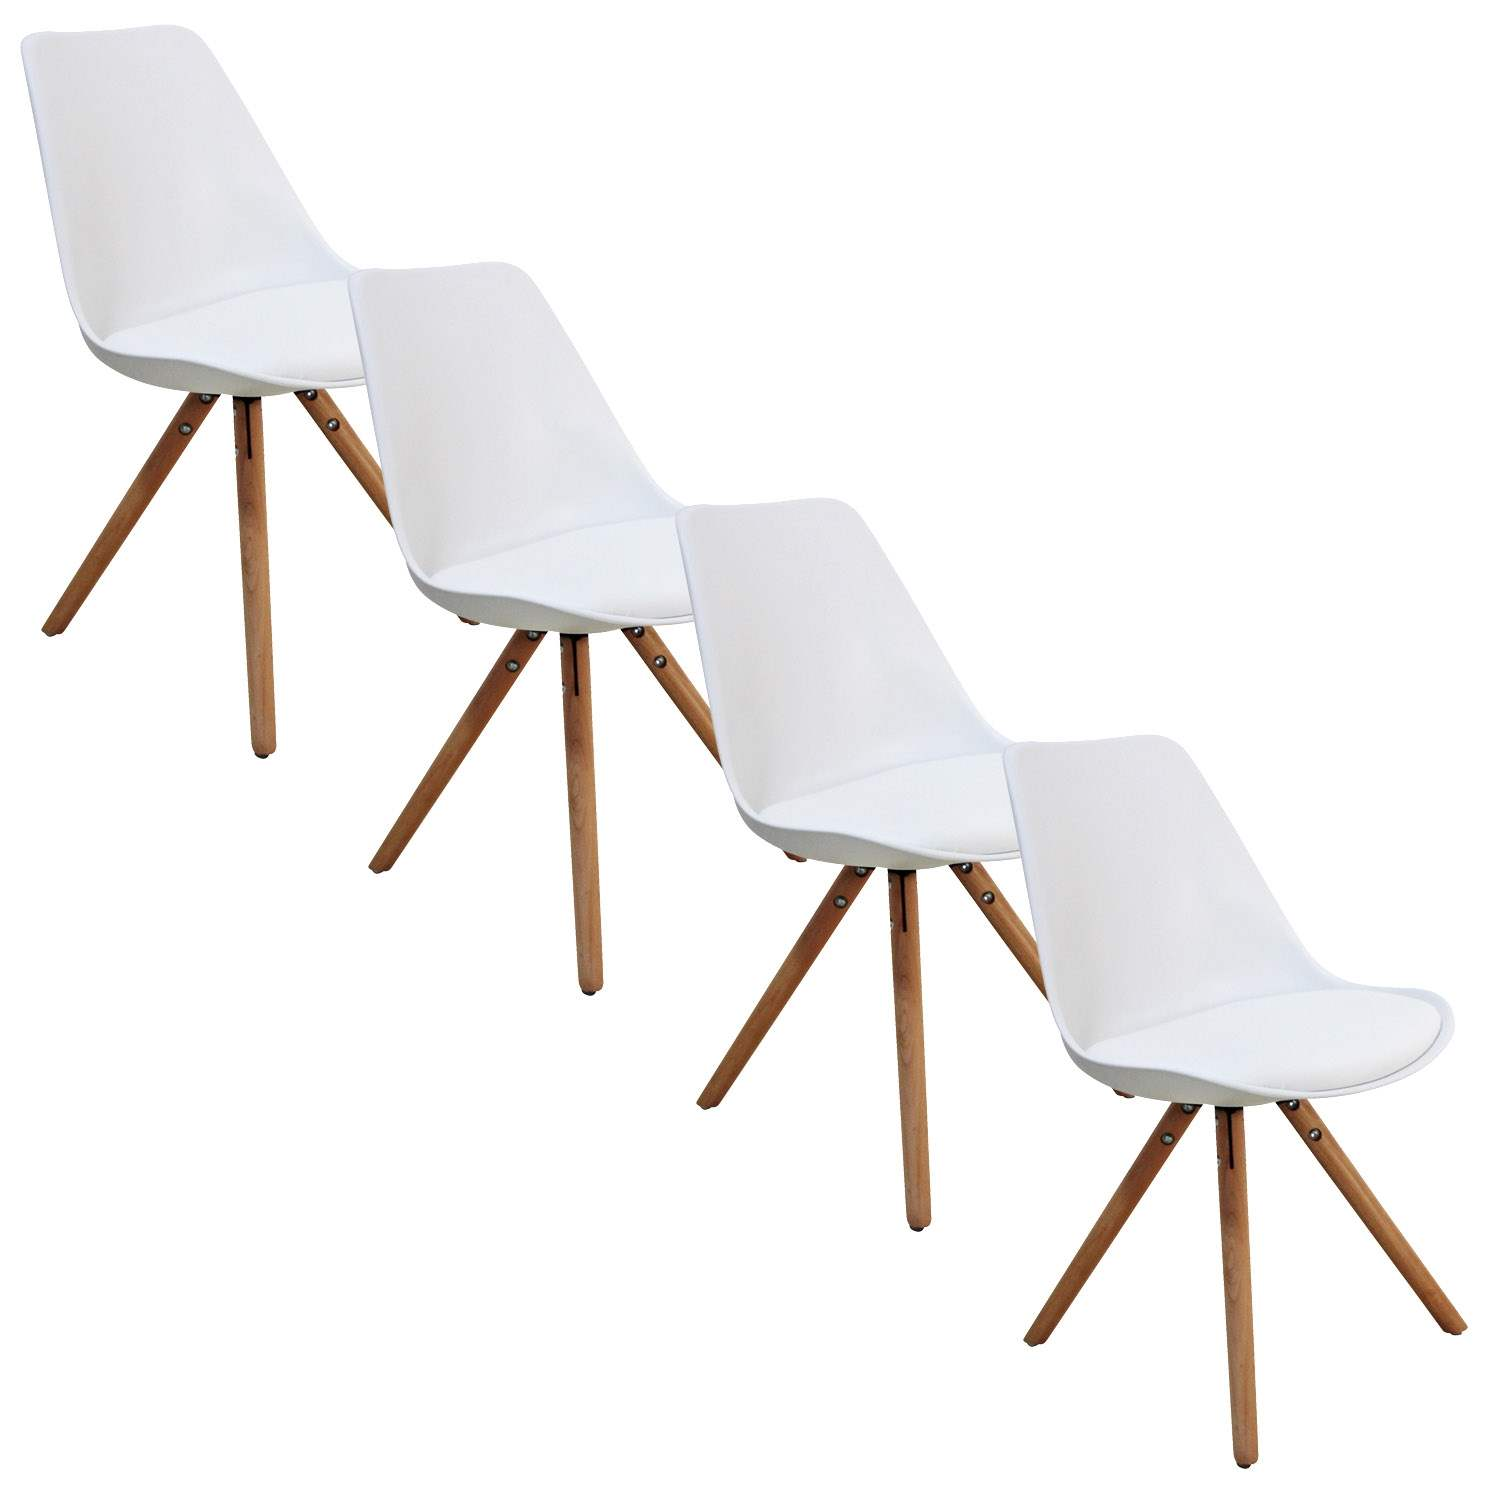 deco in paris lot de 4 chaises design blanc velta velta blanc x4. Black Bedroom Furniture Sets. Home Design Ideas